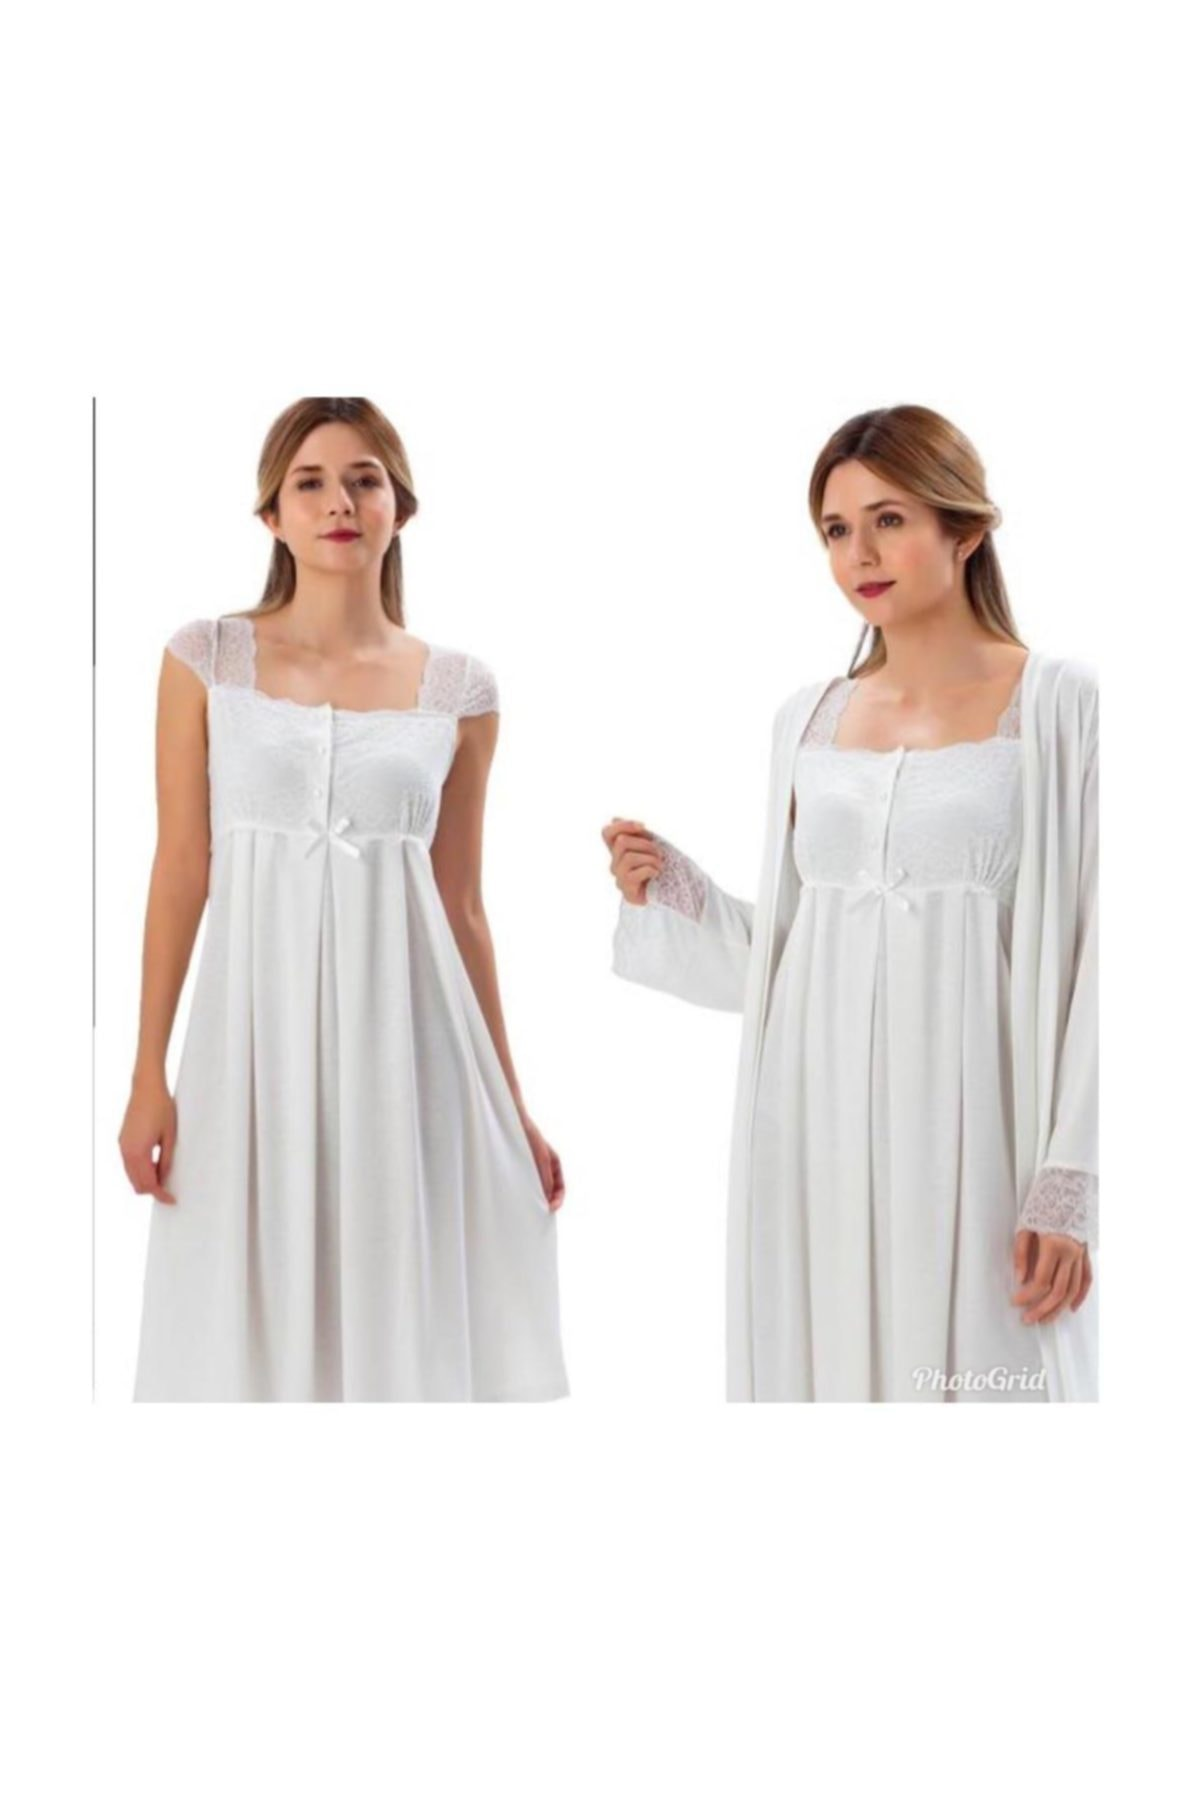 2200 maternity Puerperal Nightgown Dressing Gown Team enlarge